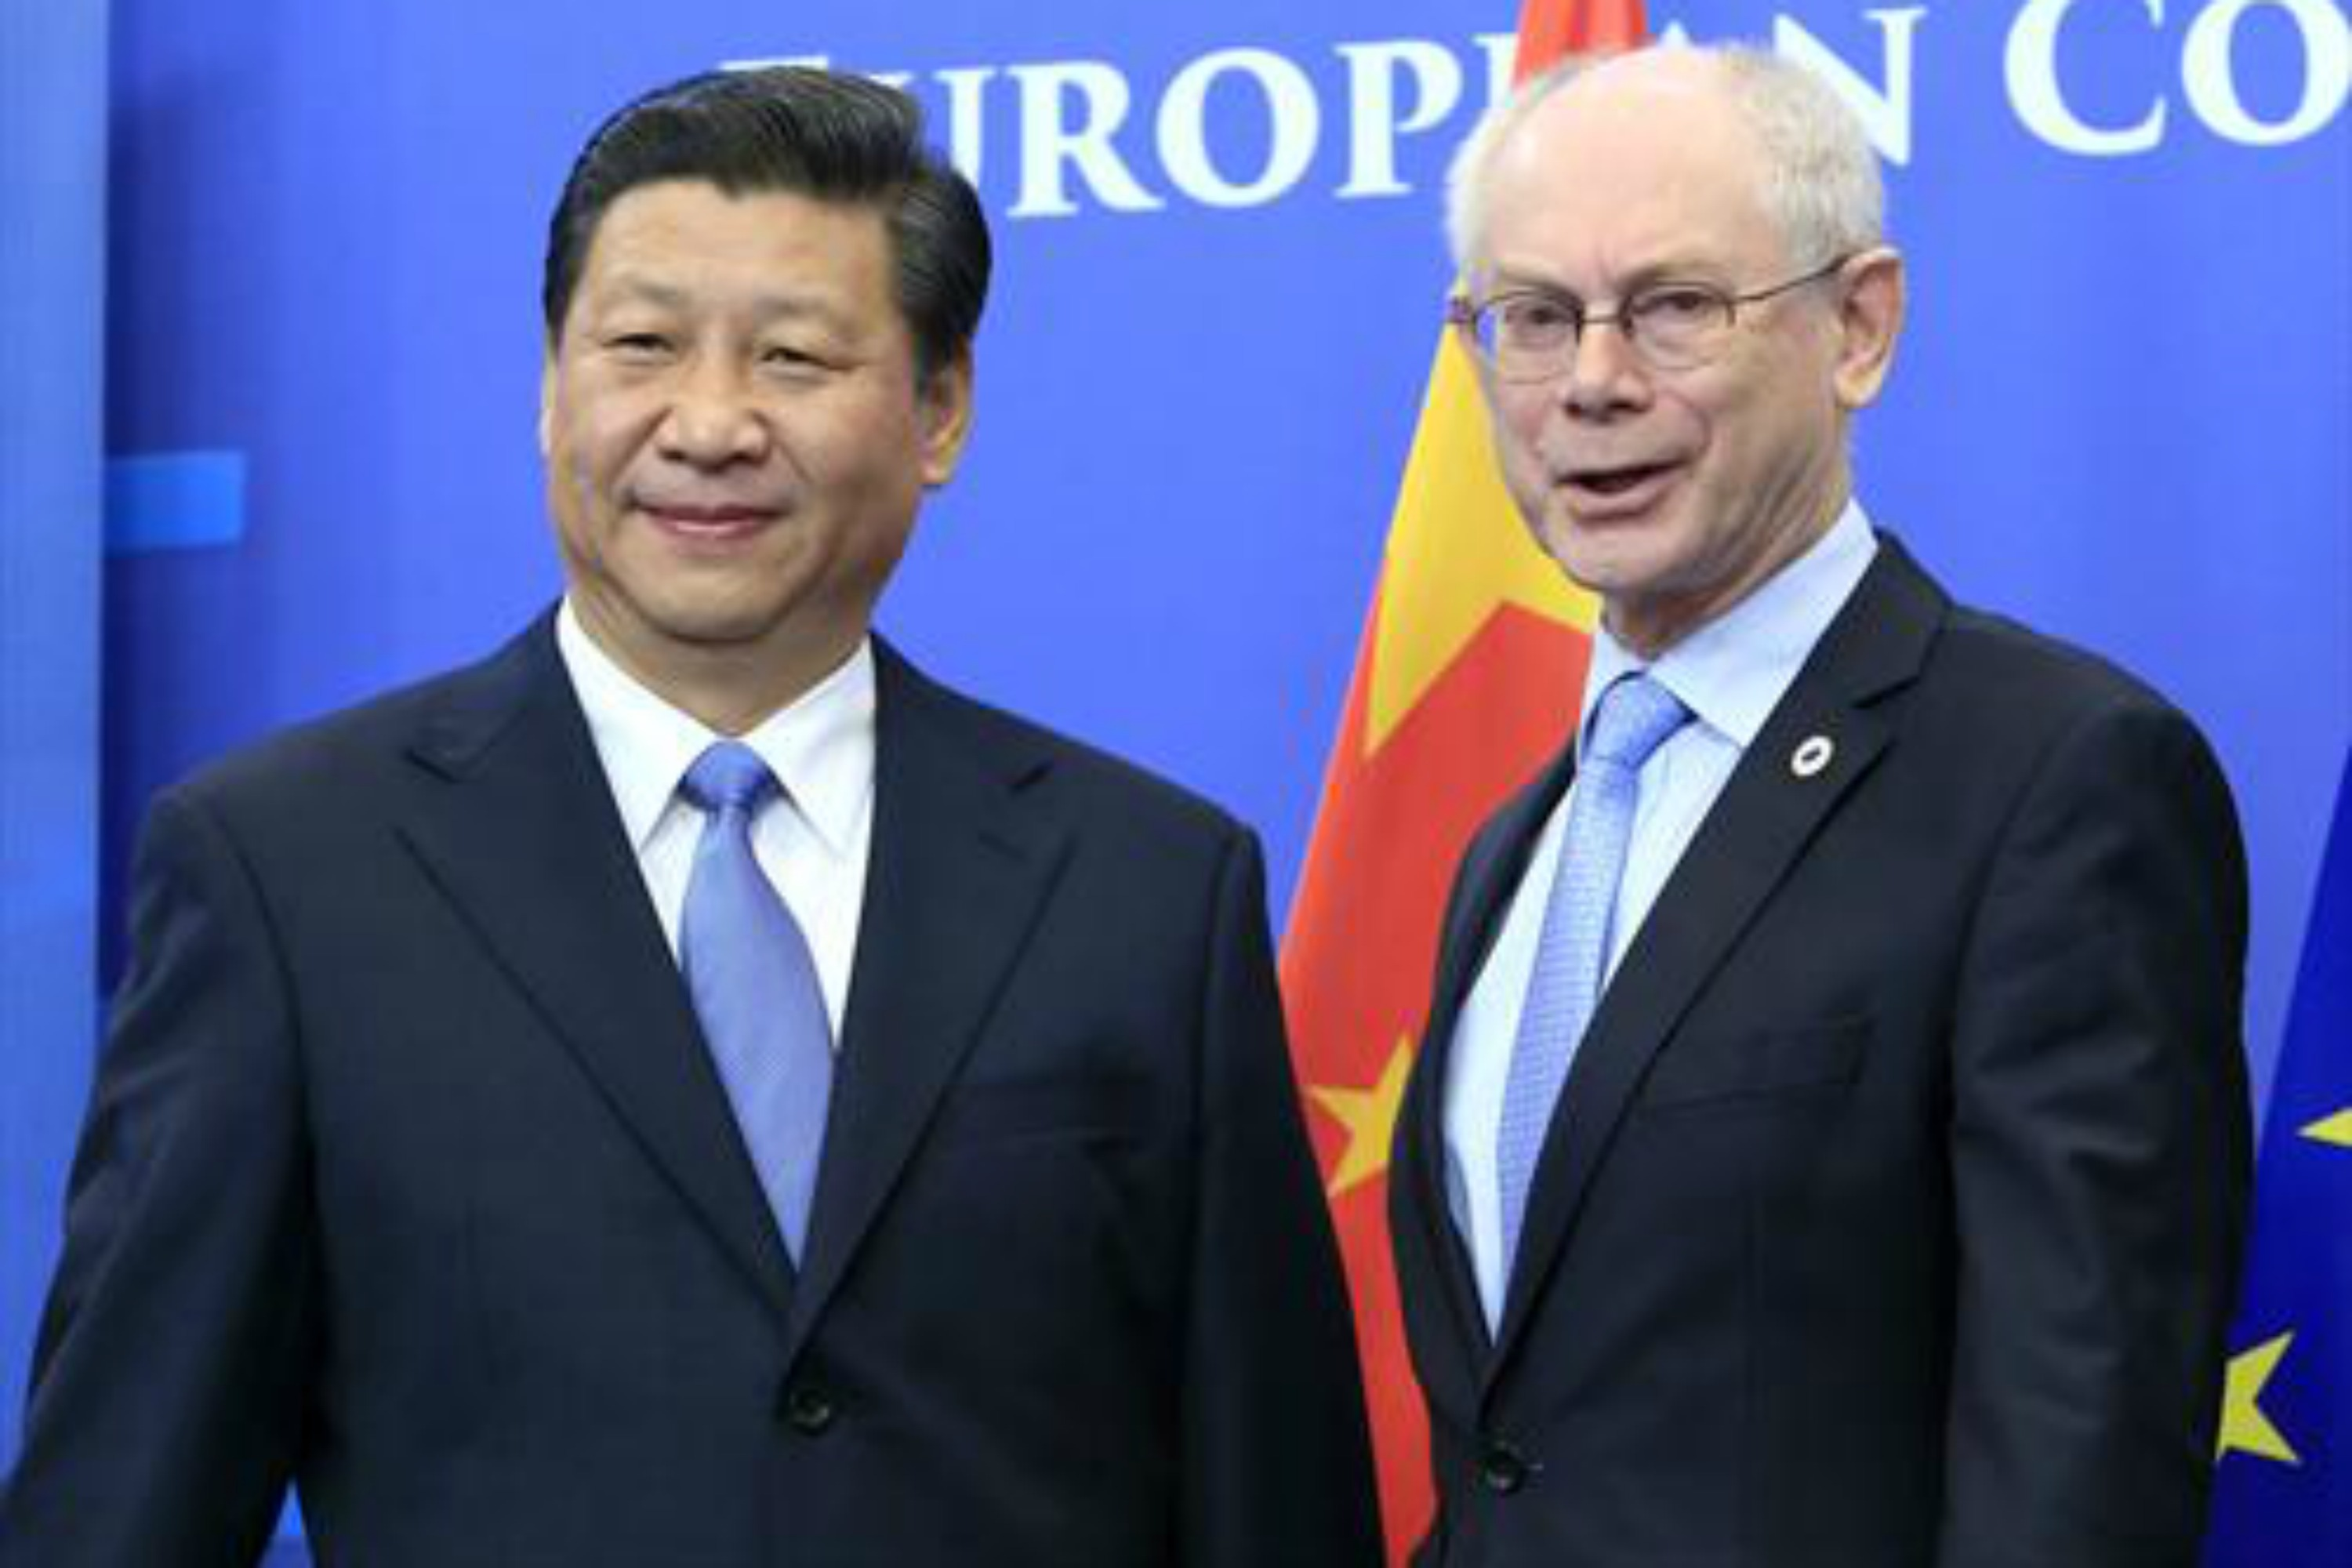 Xi Jinping and Herman Van Rompuy